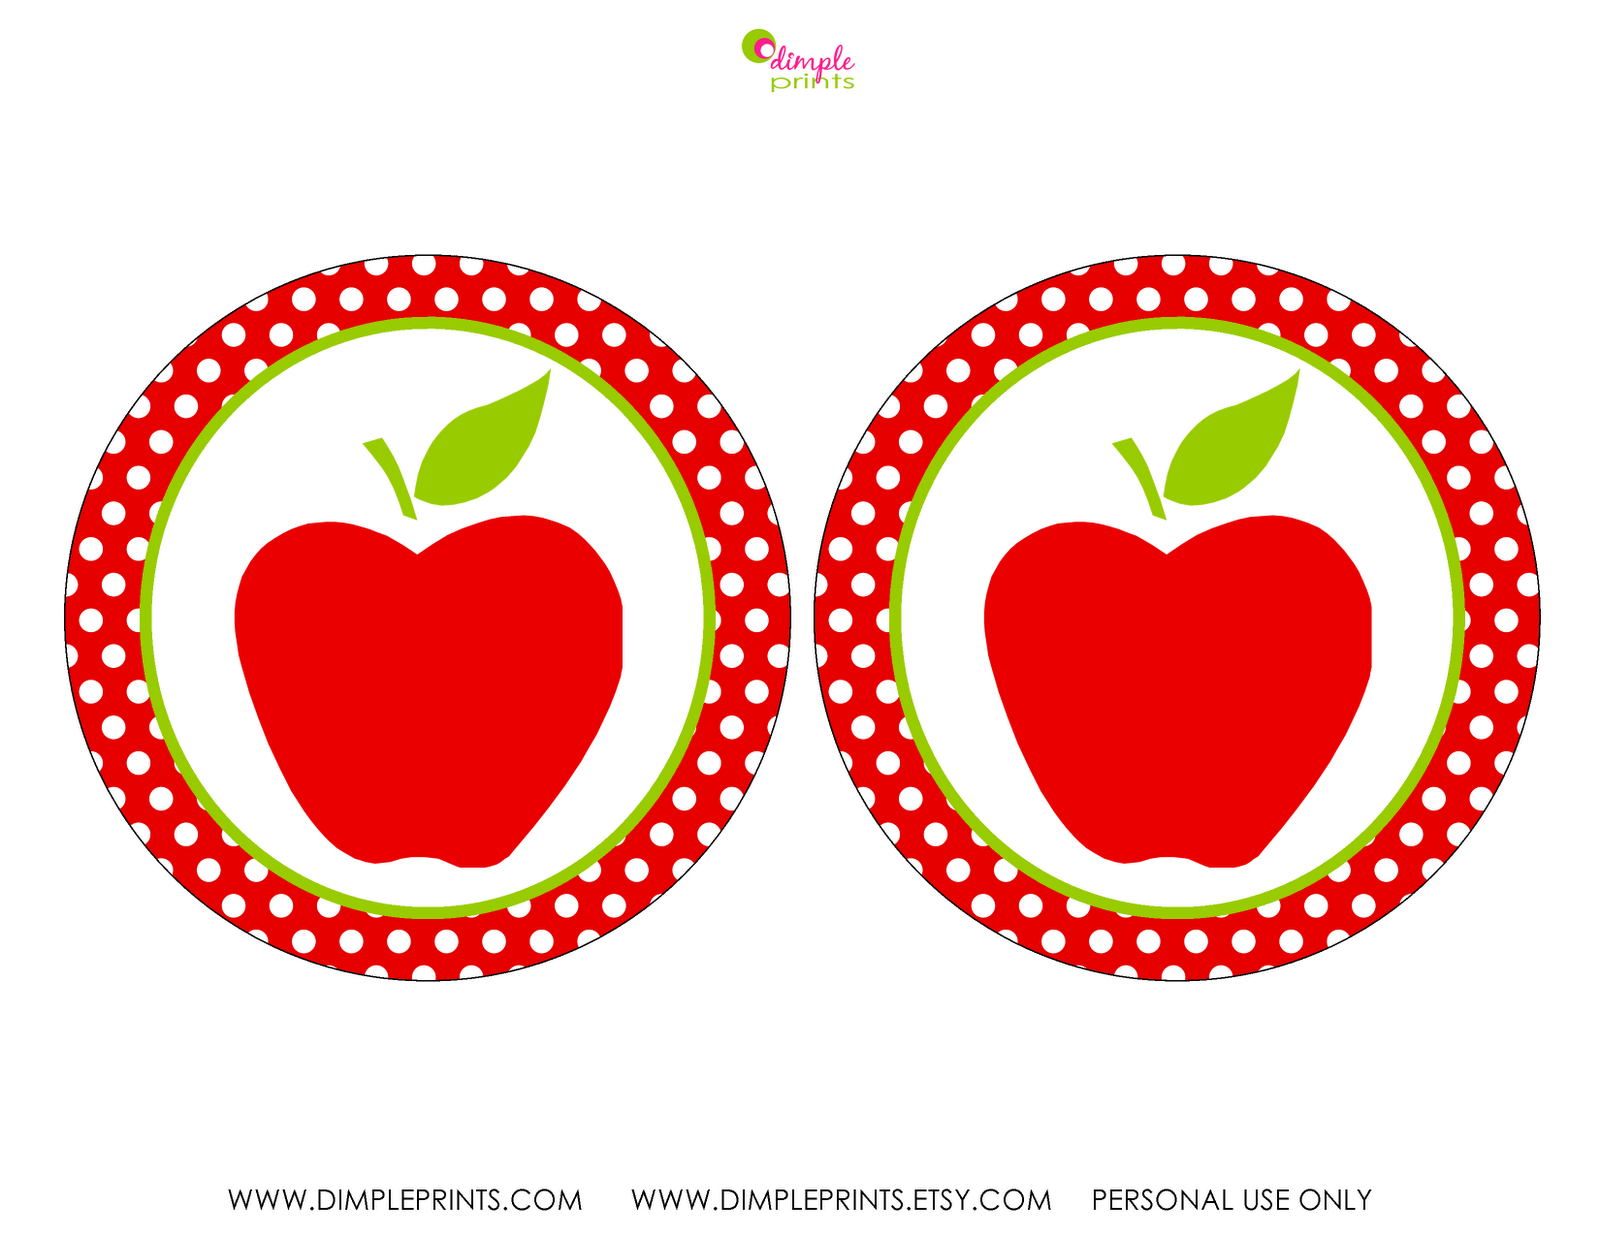 Dimple Prints Free Download Back To School Party Amp Teacher Supplies